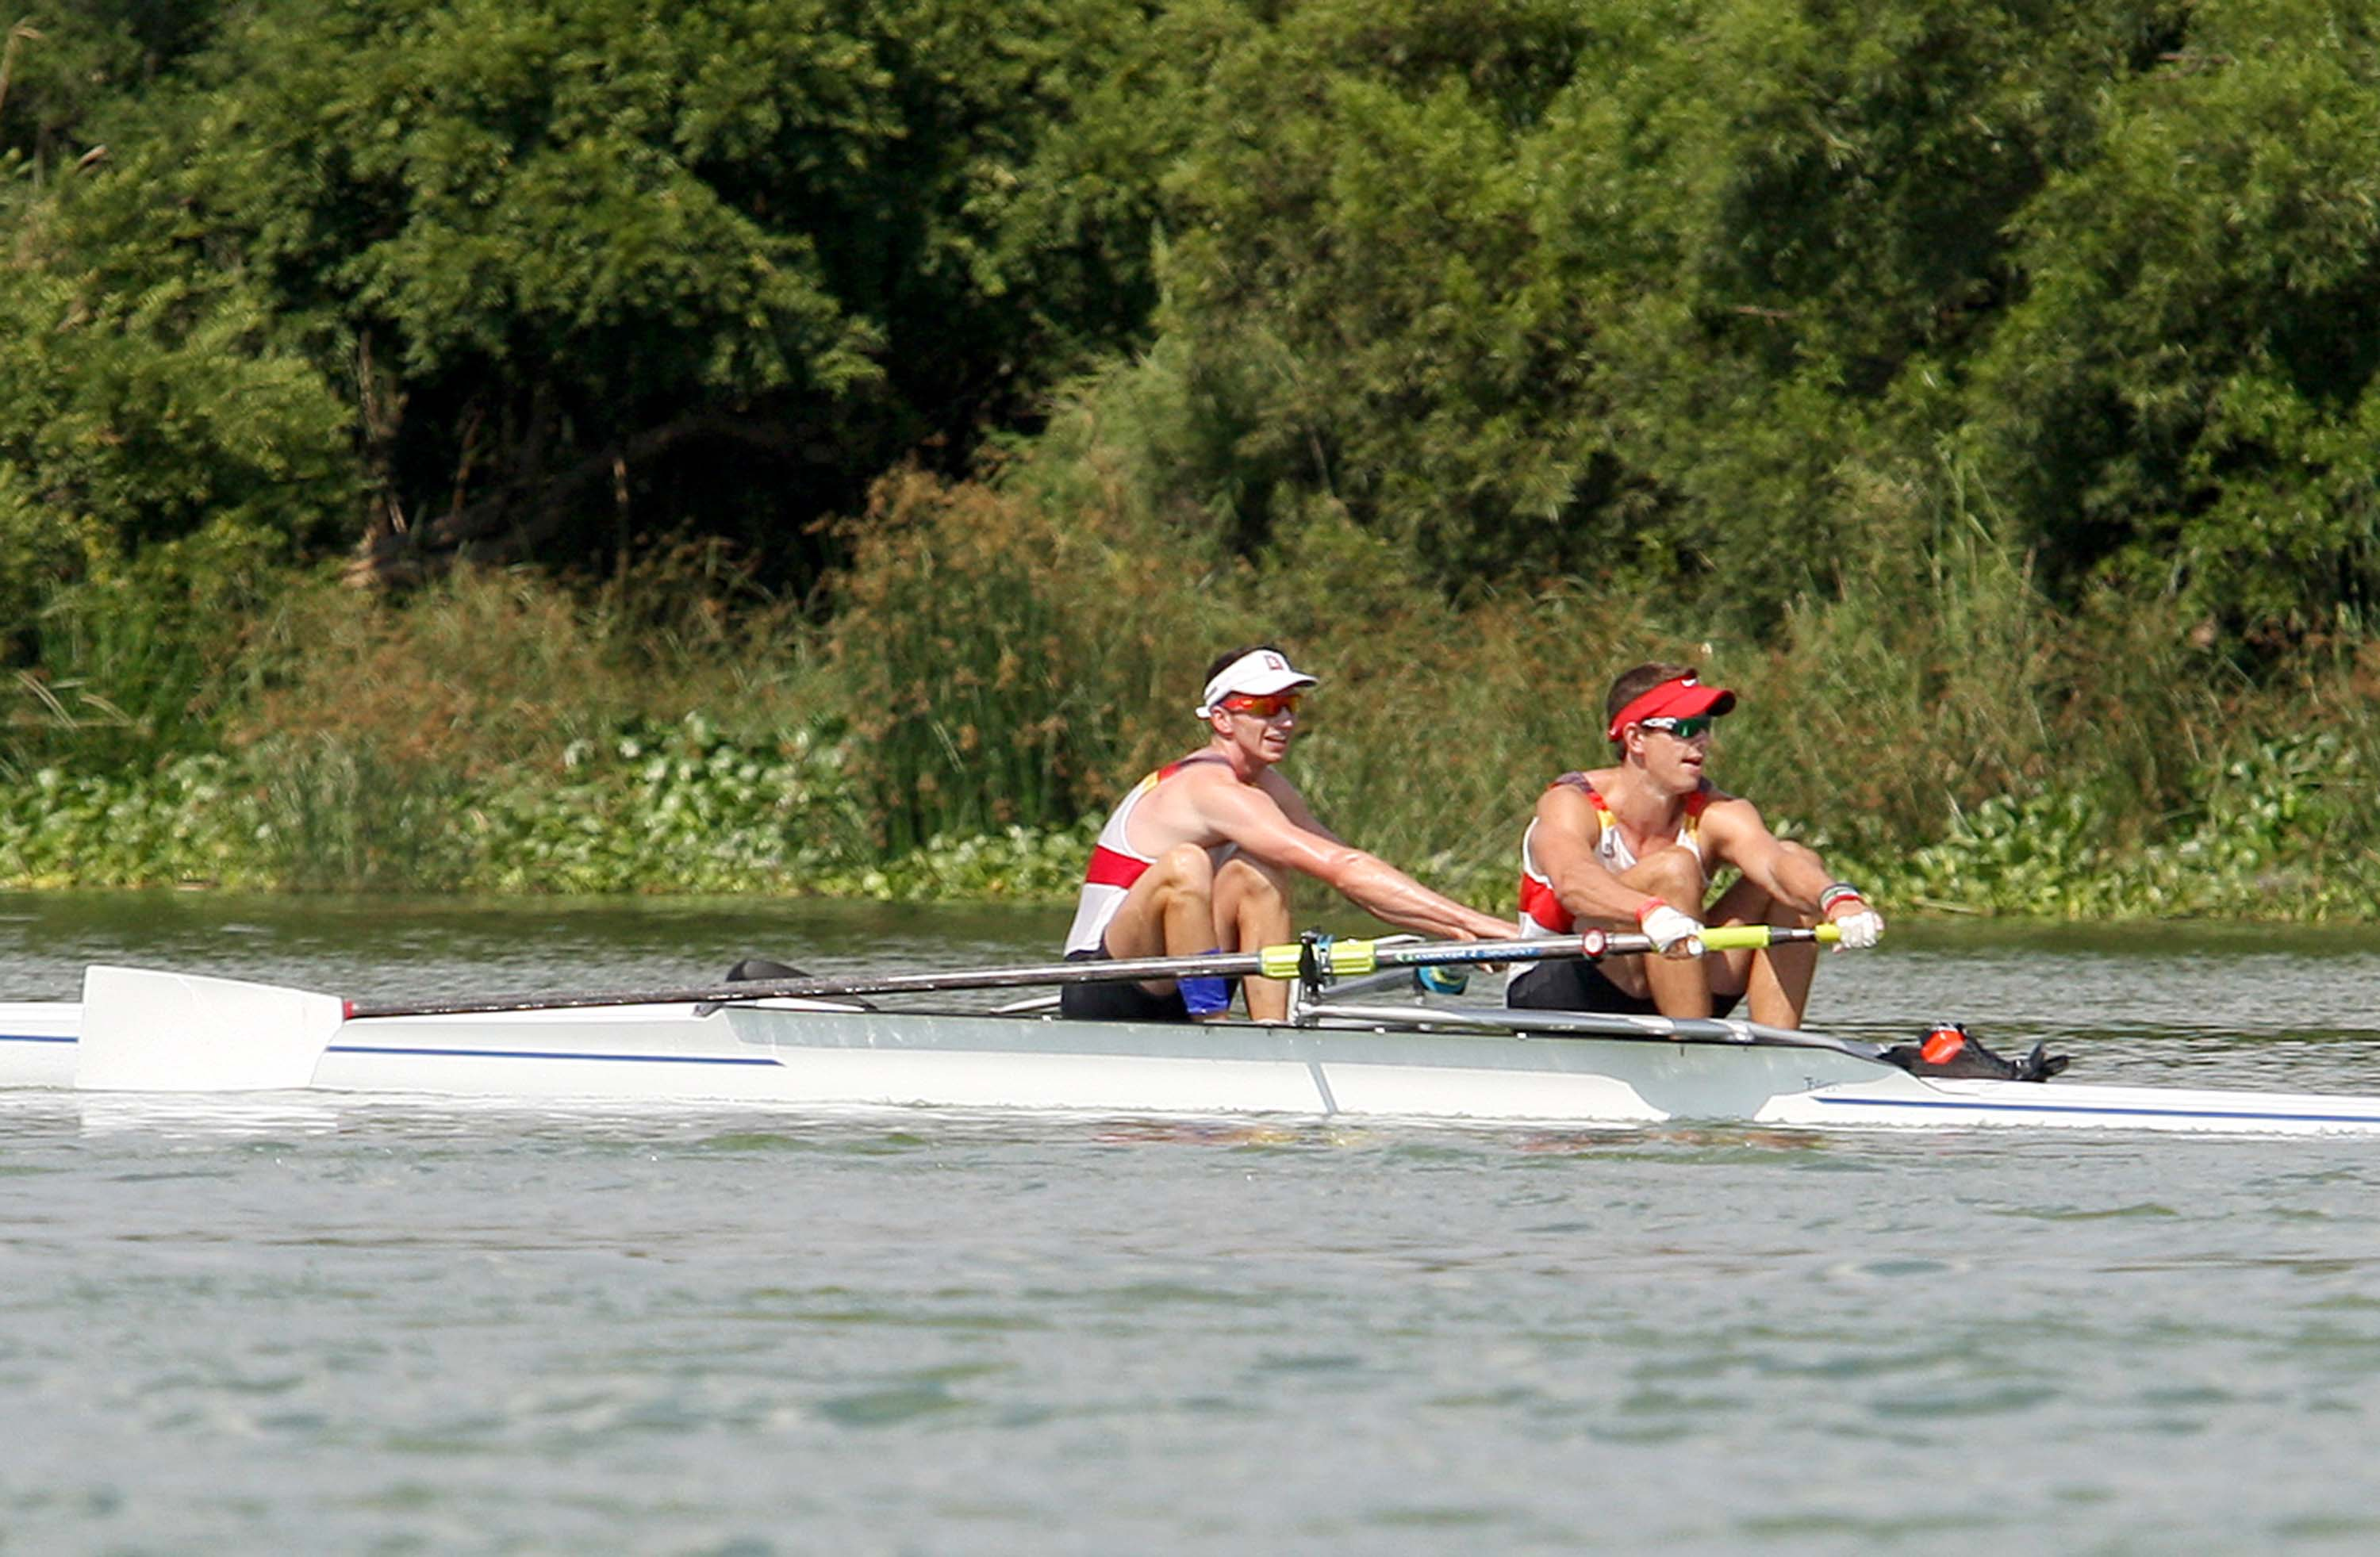 Even Olympic rowers still have 'Grand' aspirations